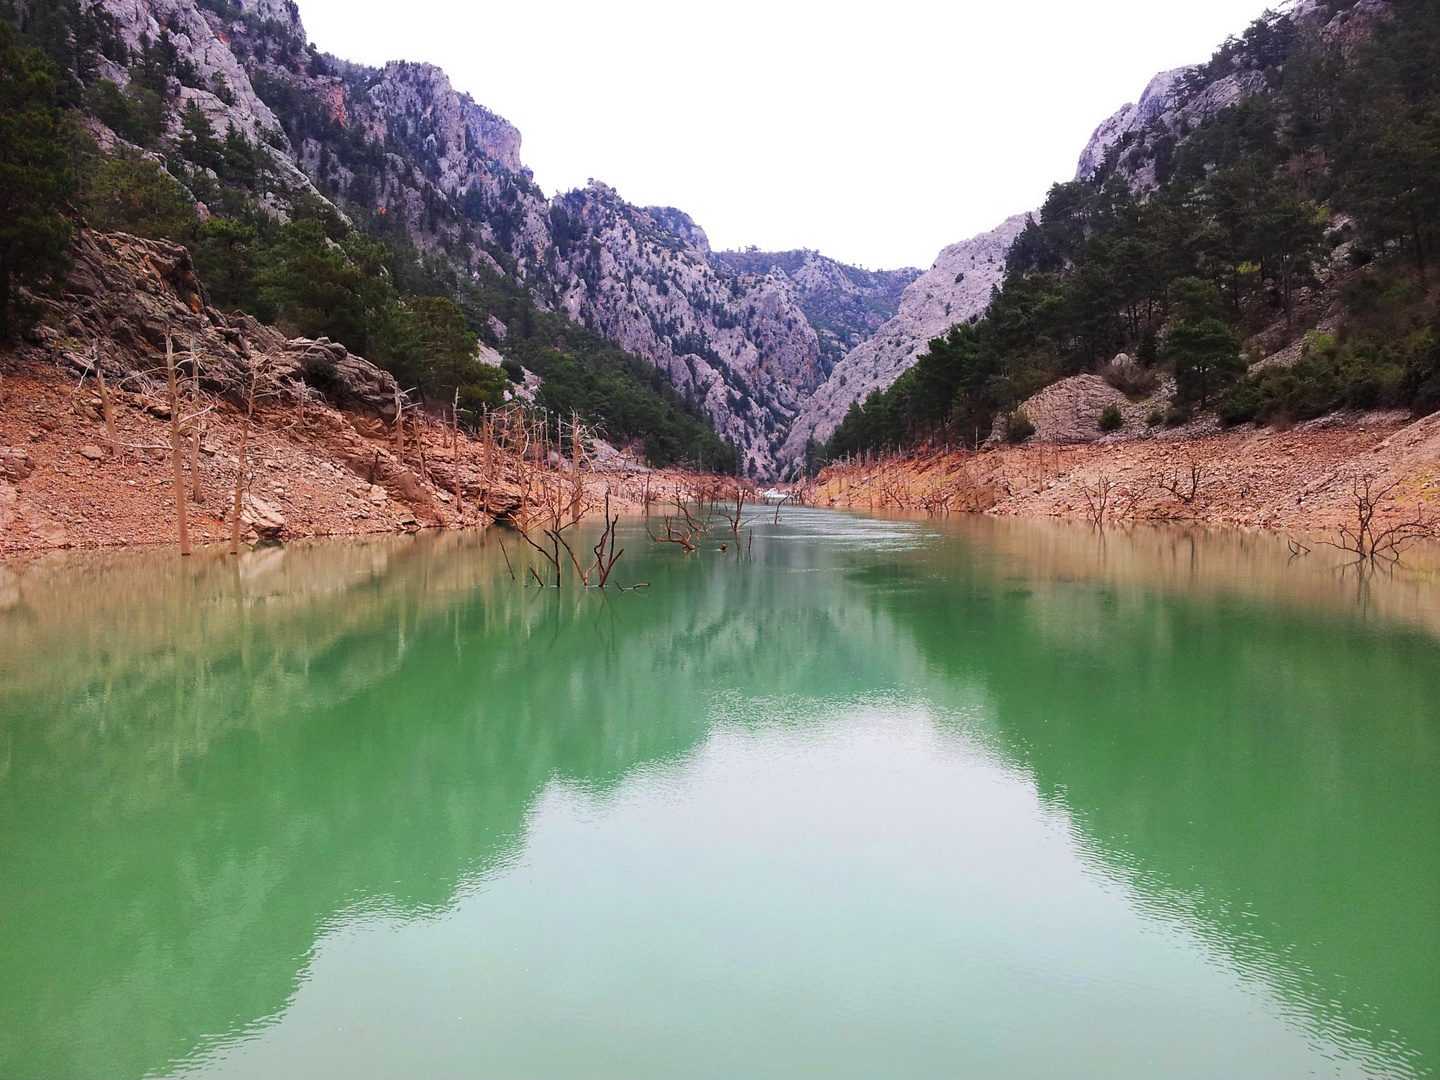 Green Canyon in Manavgat